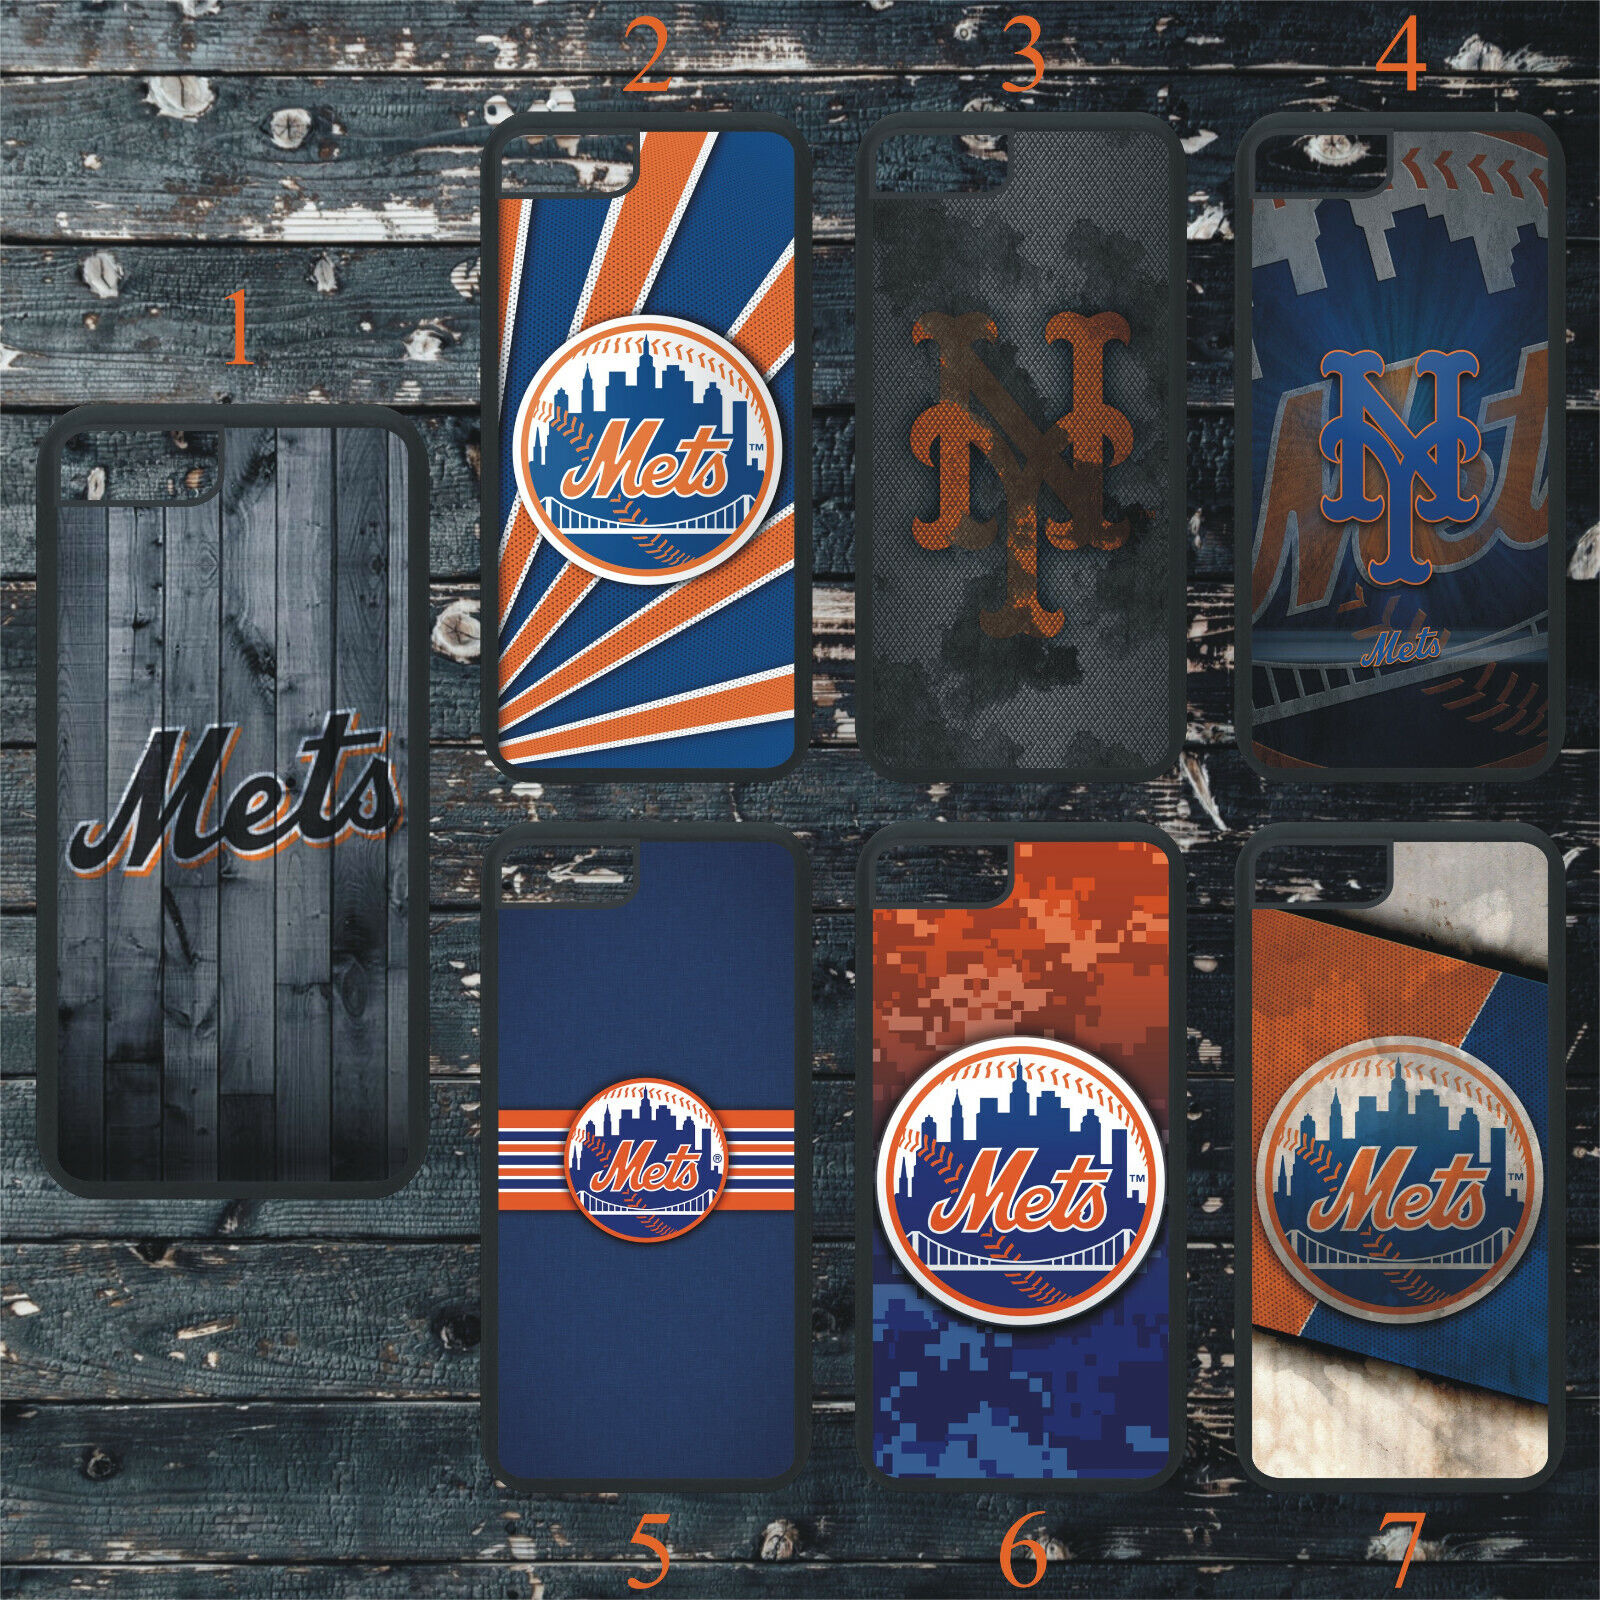 NEW YORK METS PHONE CASE COVER FITS iPHONE 7 8 X 11 SAMSUNG